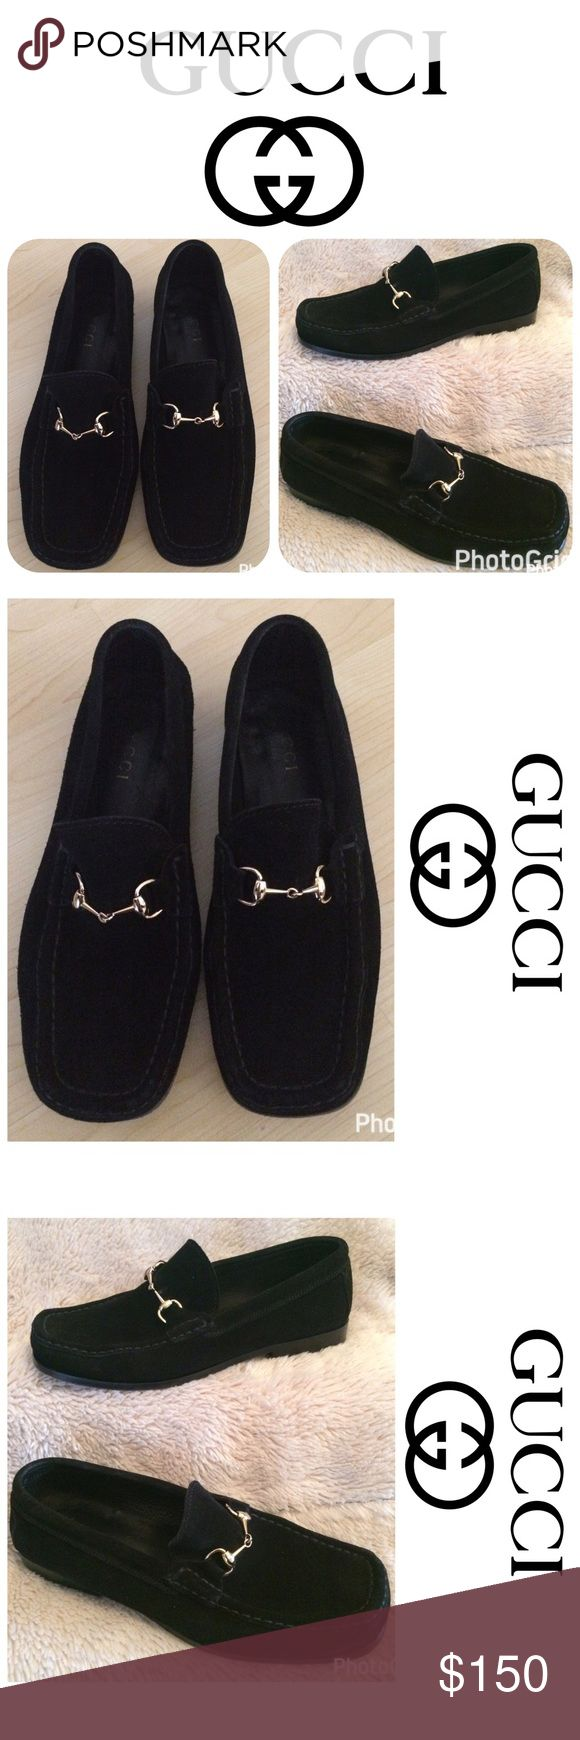 AUTHENTIC *GUCCI* Black Suede Loafer Size 37C-US 7 AUTHENTIC *GUCCI* Ladies Black Suede Leather Horse it Loafer Shoes Size 37C-US 7!  These are a pair of black ***GUCCI*** suede leather horsebit loafer dress shoes in Size 37C-US 7.  These shoes are gently worn and in *EXCELLENT* condition!  The horse bit hardware is gold tone.  If you have any questions, please do not hesitate to contact me. Shoes Flats & Loafers